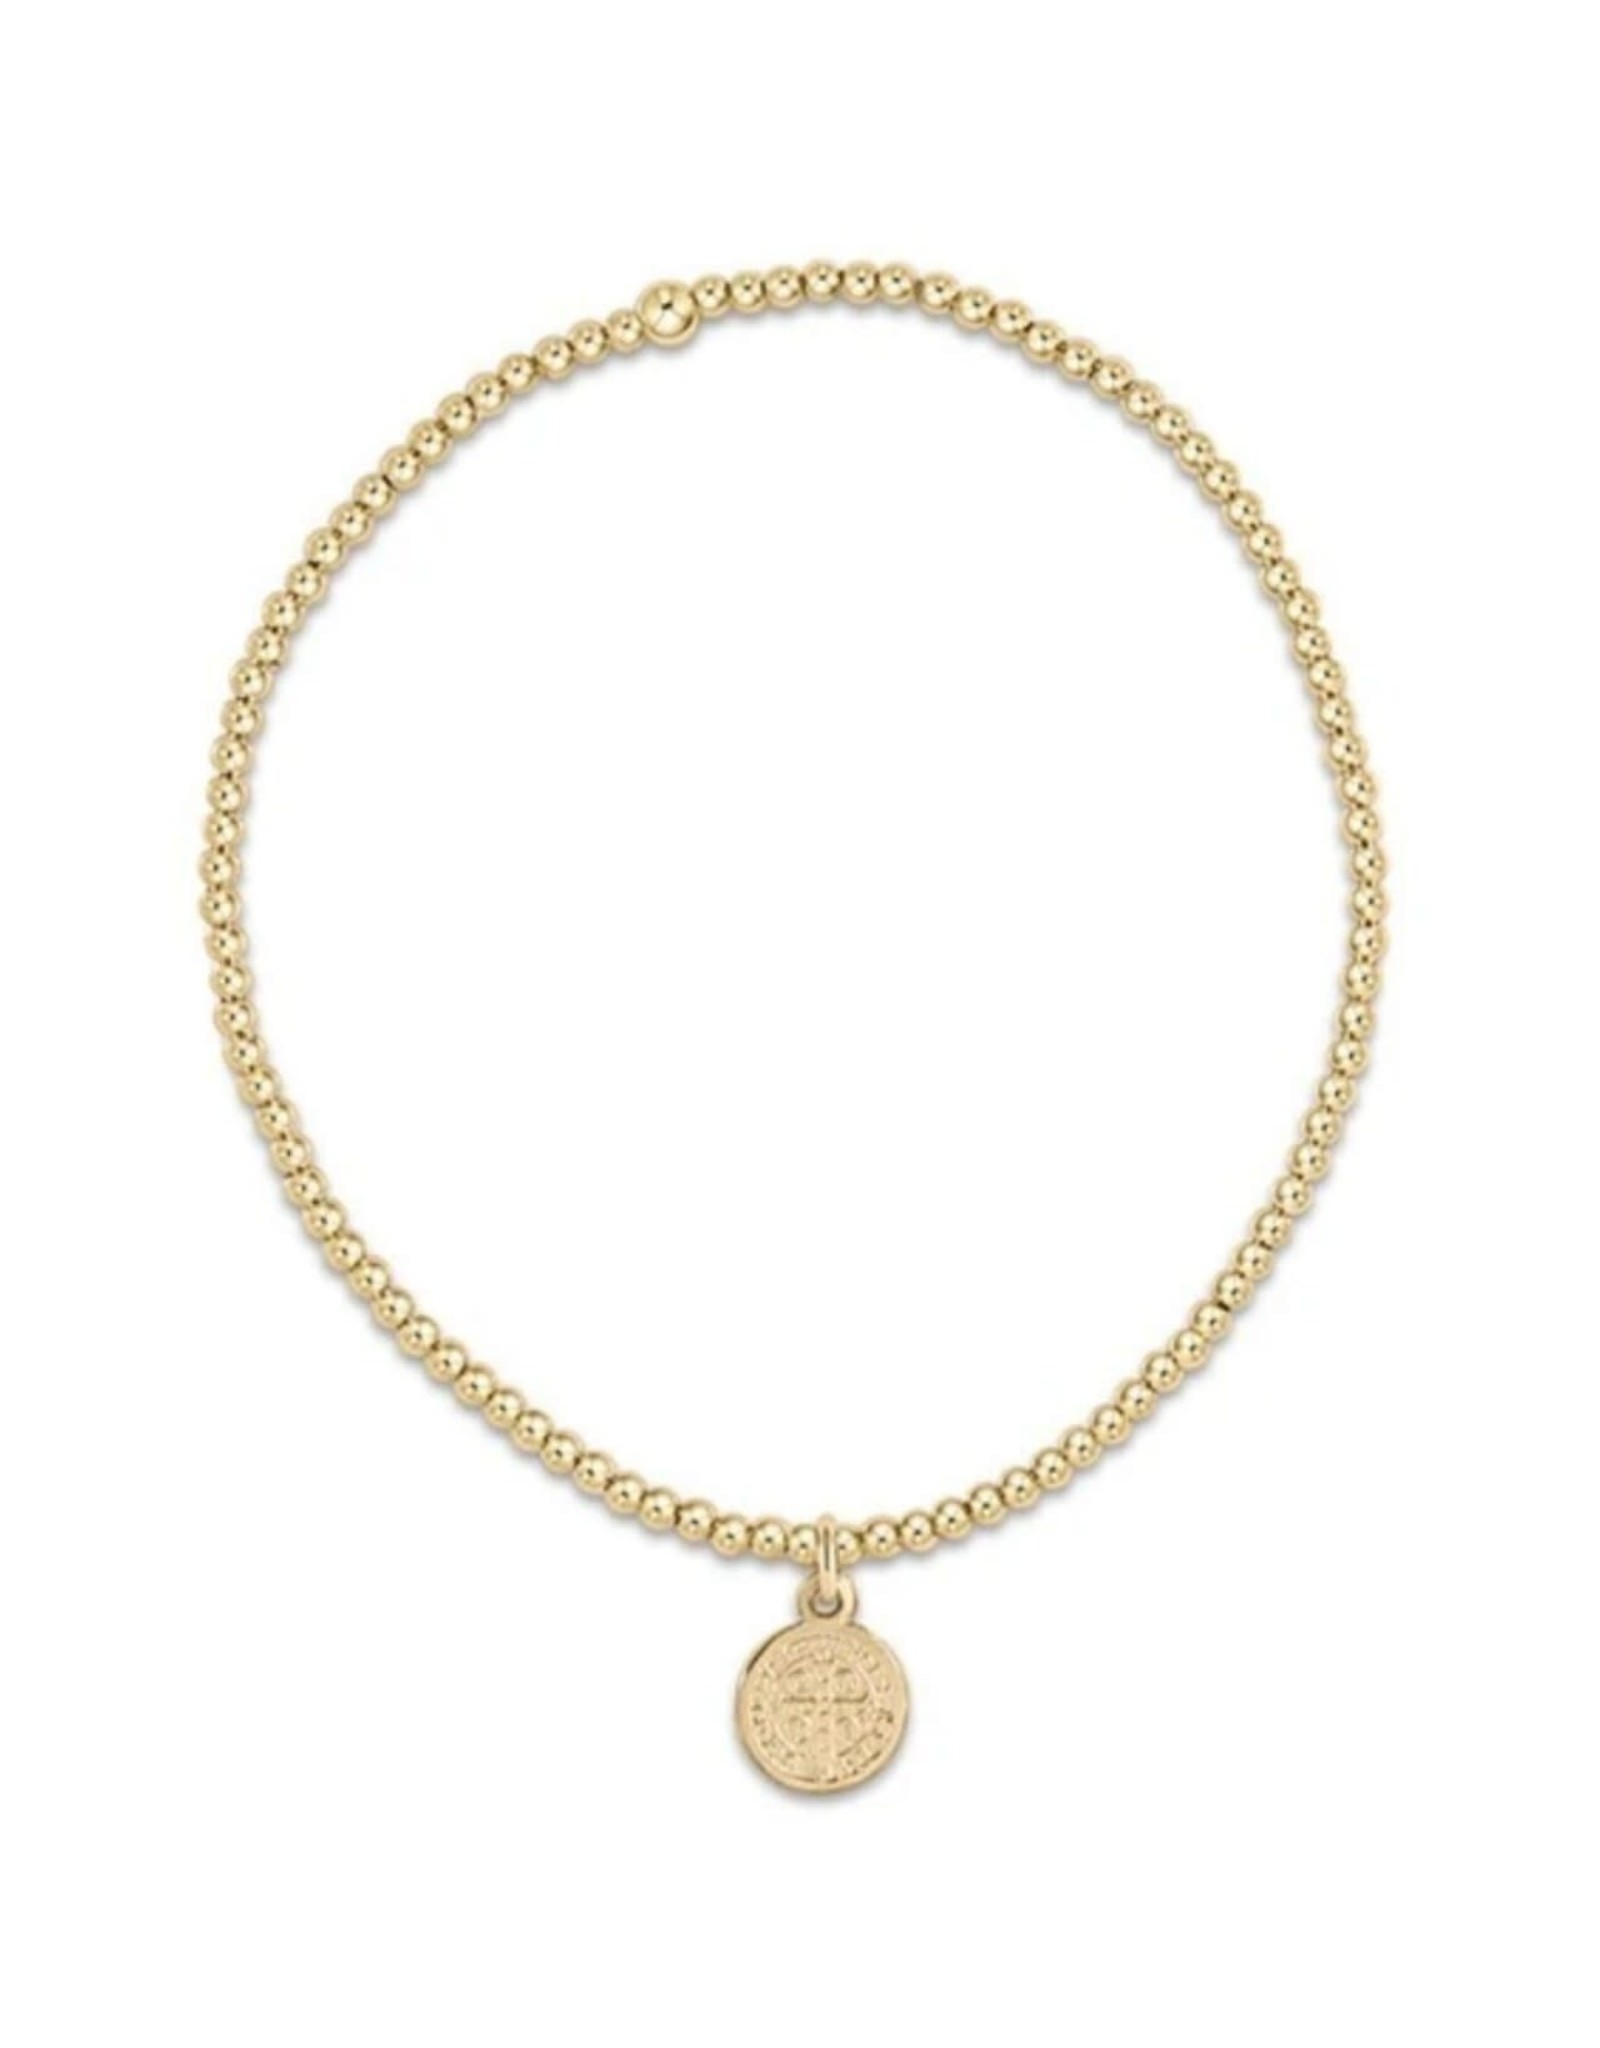 Classic Gold 2mm Bead Bracelet - Blessing Small Gold Charm